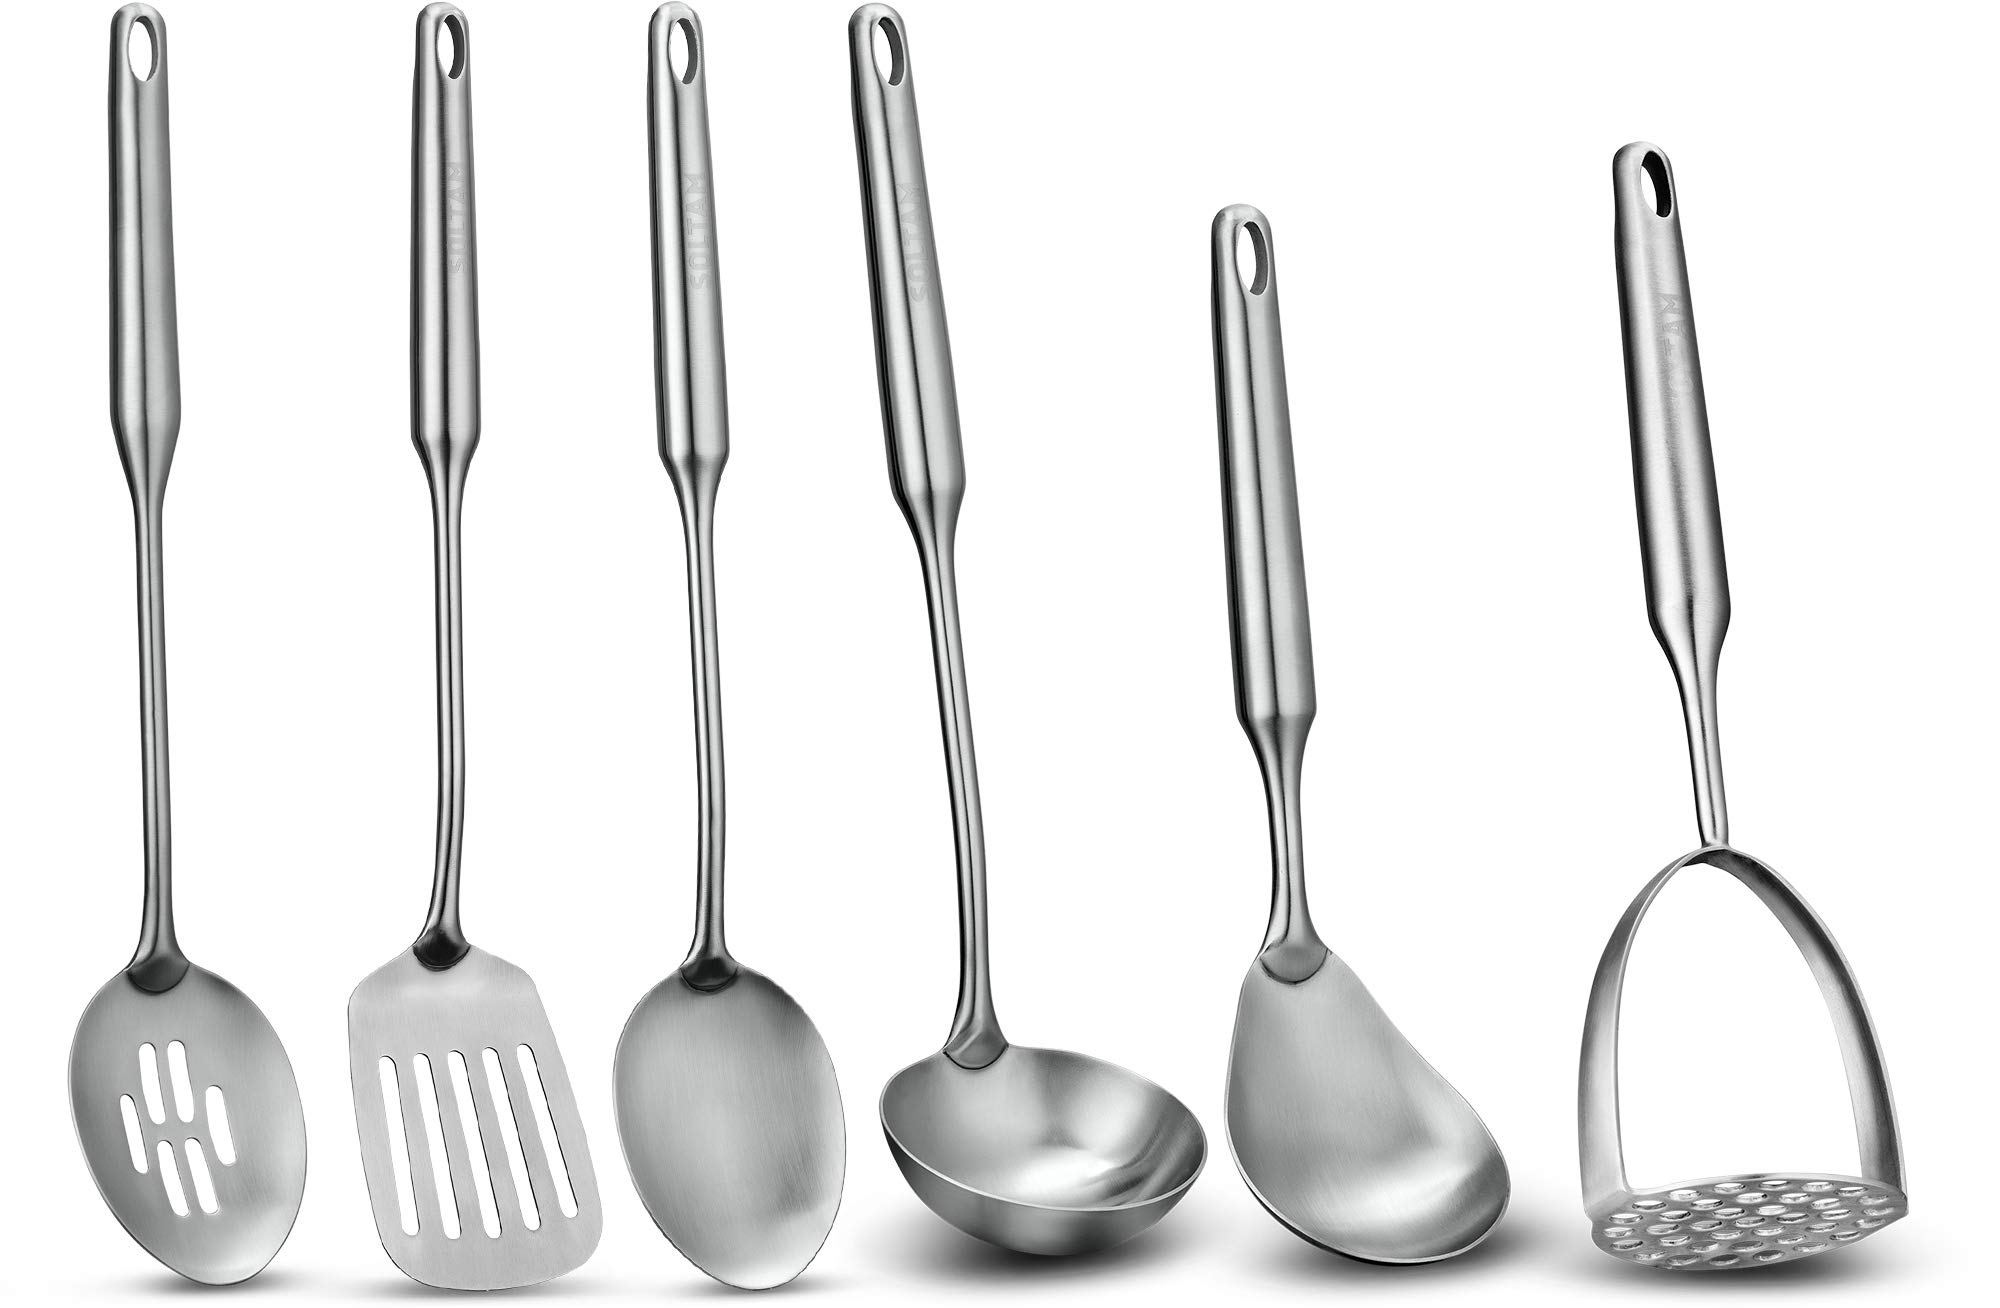 6 Piece Stainless Steel Serving Cooking Kitchen Utensil Set - Will Last Your Kitchen a Lifetime, Guaranteed - Meticulous Craftsmanship, Sleek Modern Design, Exceptional Quality. by Soltam Professional Cookware